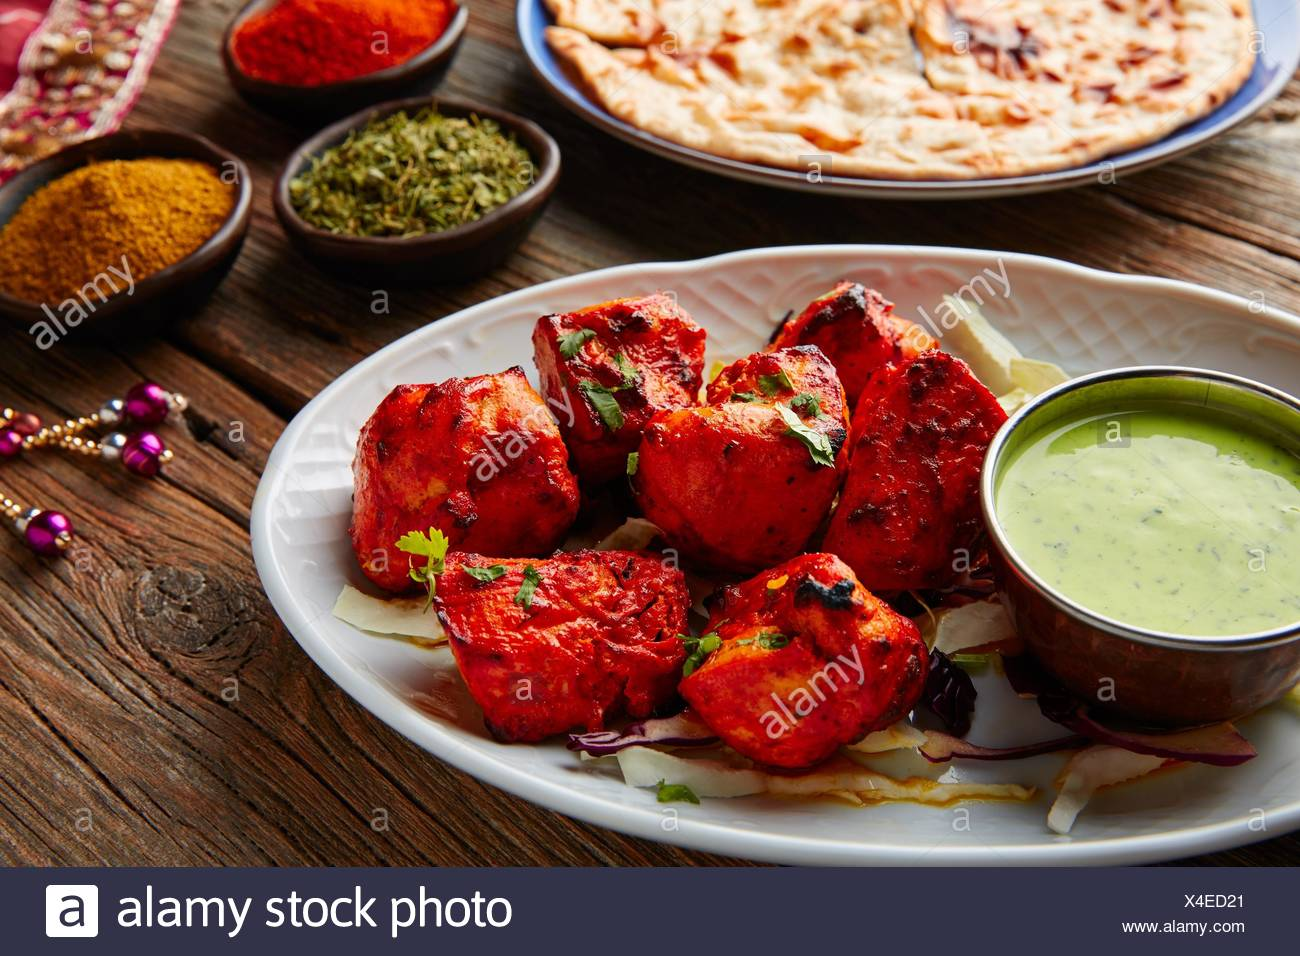 Chicken tikka indian food recipe with spices stock photo 278142089 chicken tikka indian food recipe with spices forumfinder Image collections